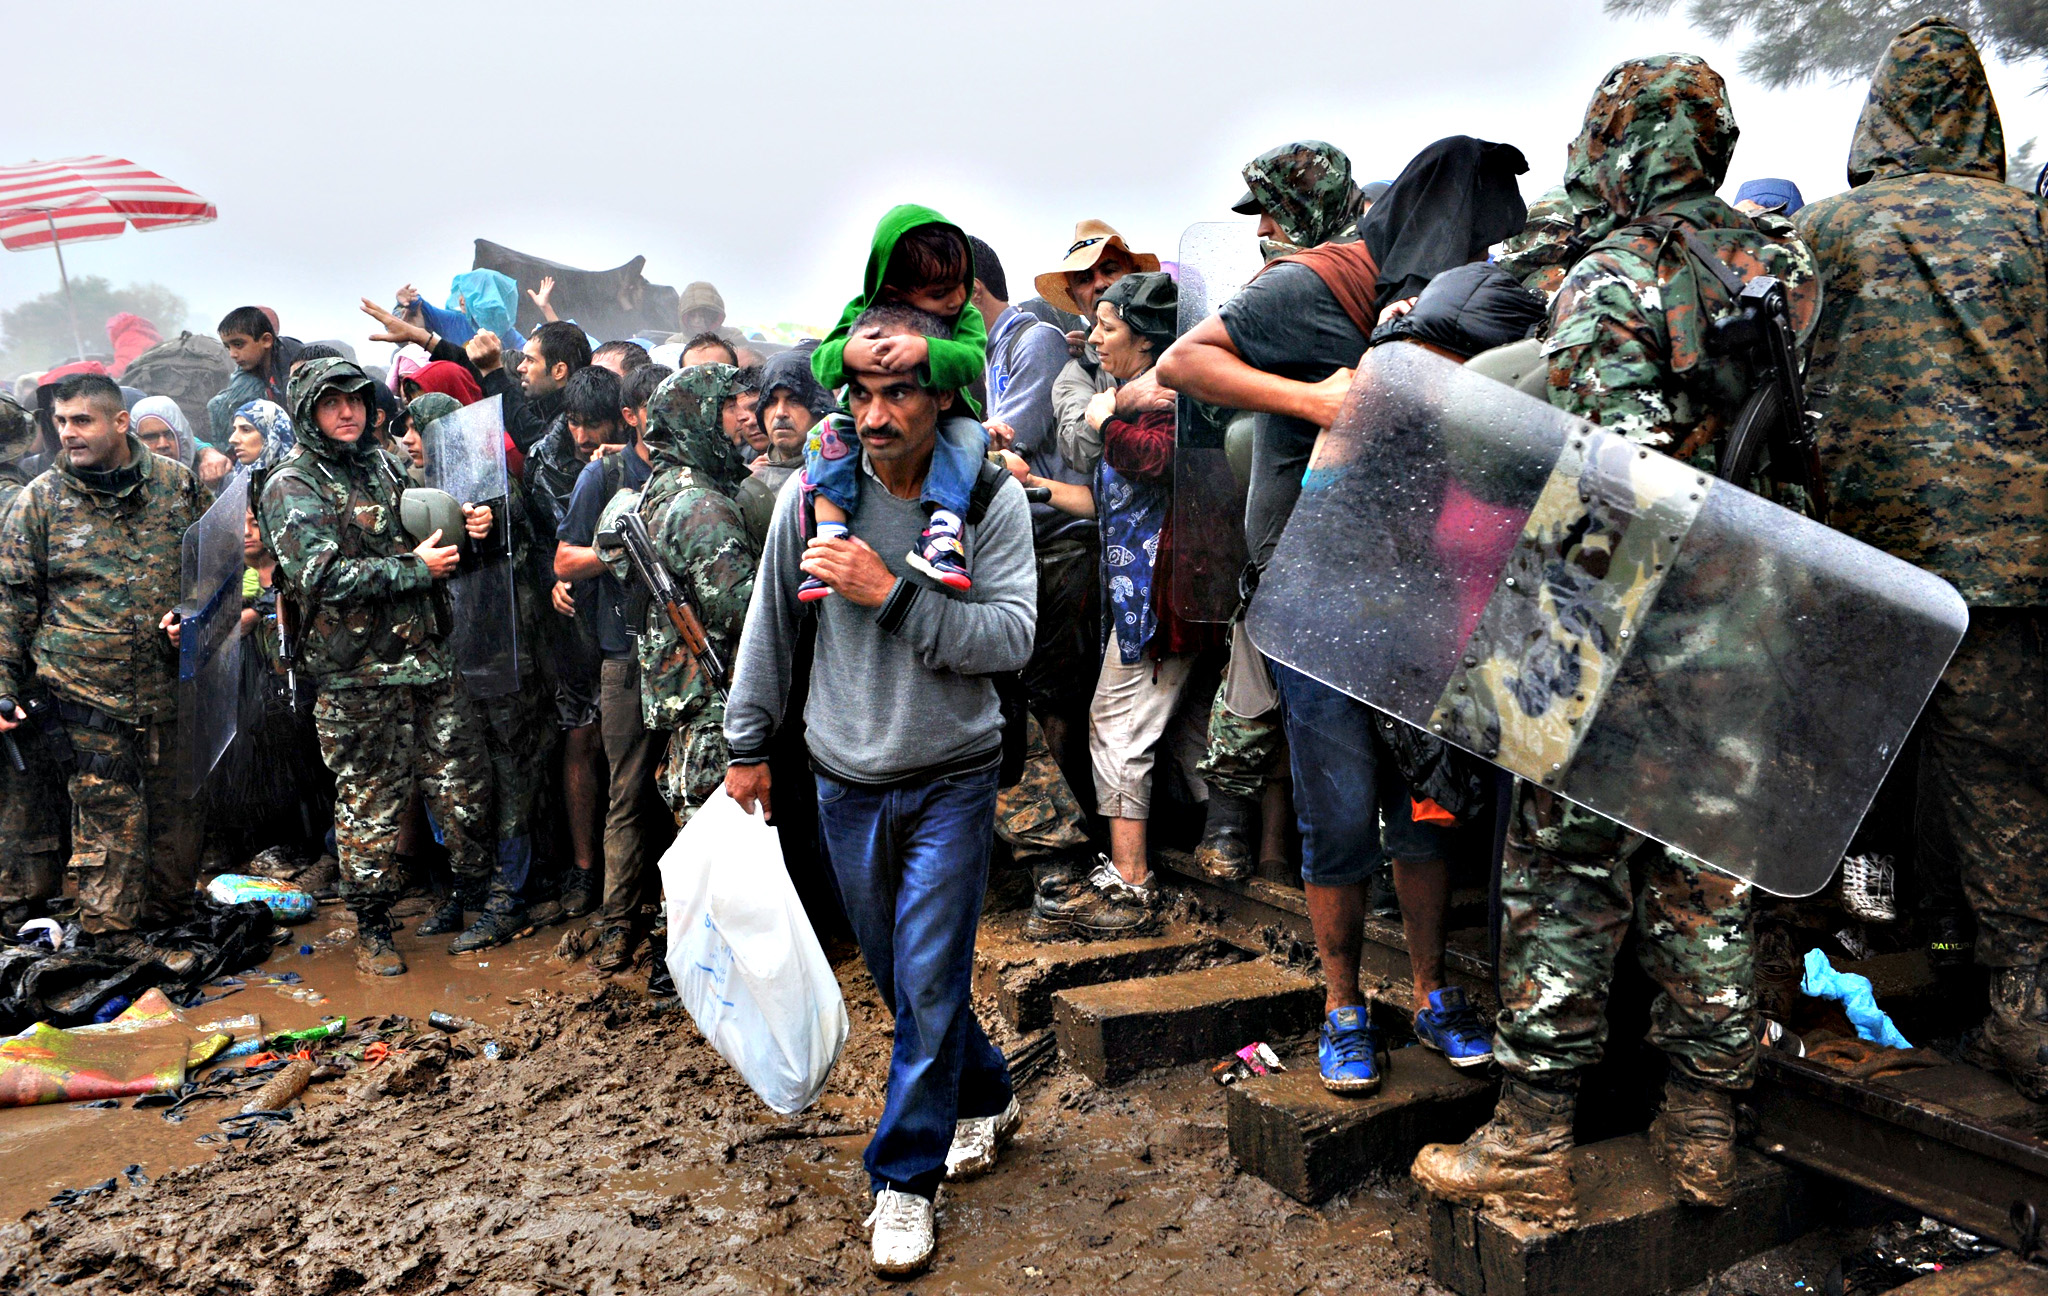 Migrants and refugees wait under the rain to cross the Greek-Macedonian border near the village of Idomeni, in northern Greece onThursday. More than 10 thousands refugees and migrants arrived in Piraeus from the overcrowded Greek islands, especially the island of Lesbos , in the last 24 hours